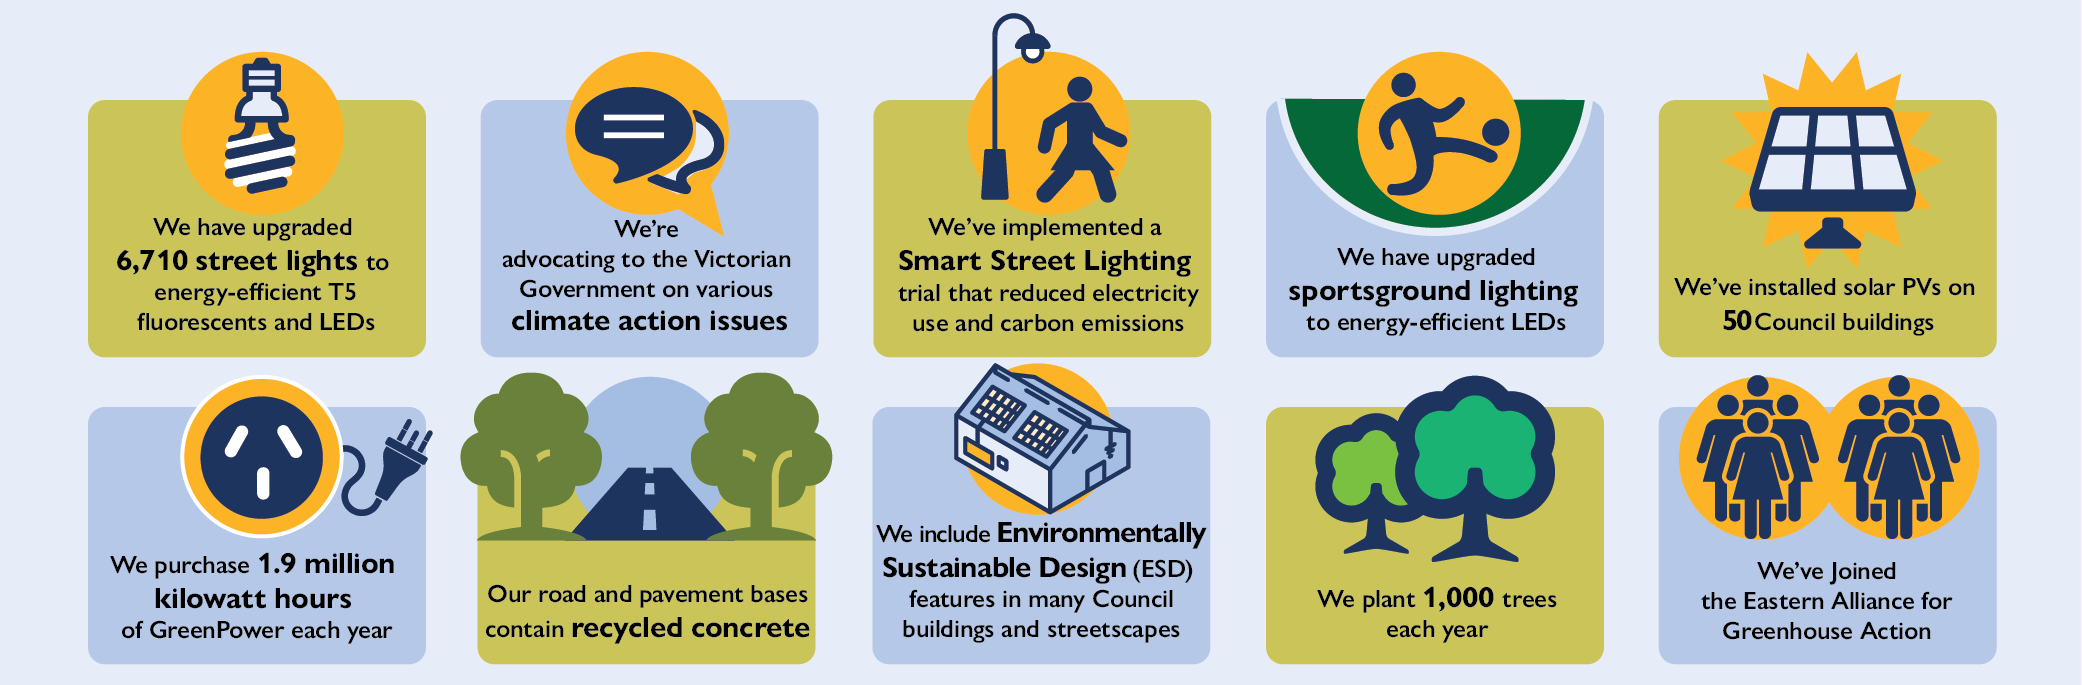 Facts about Glen Eira's action to reduce carbon emissions described in the text below.